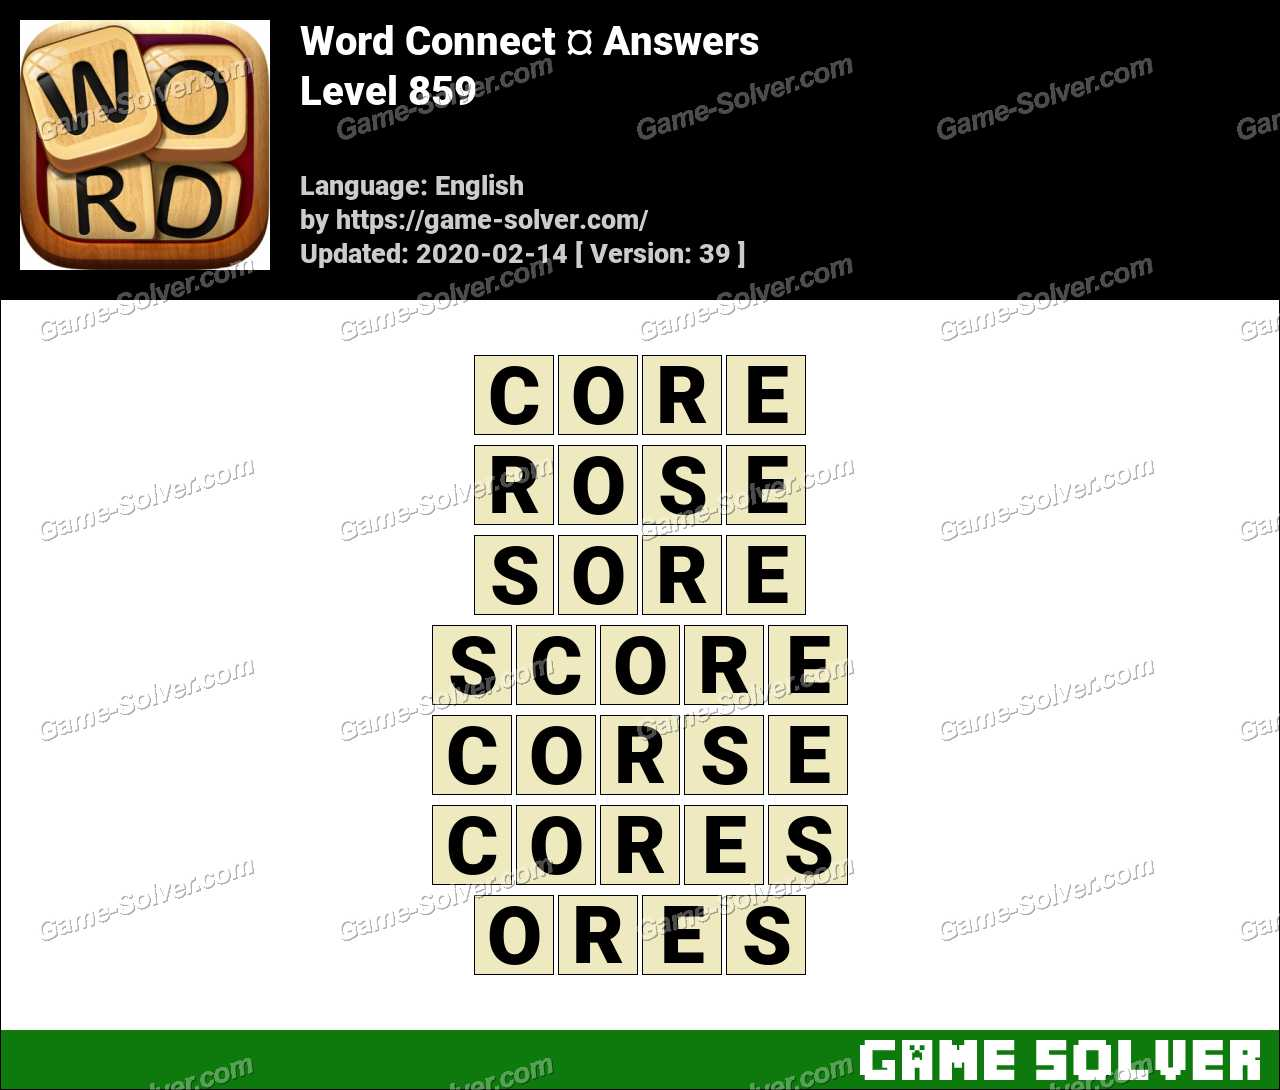 Word Connect Level 859 Answers